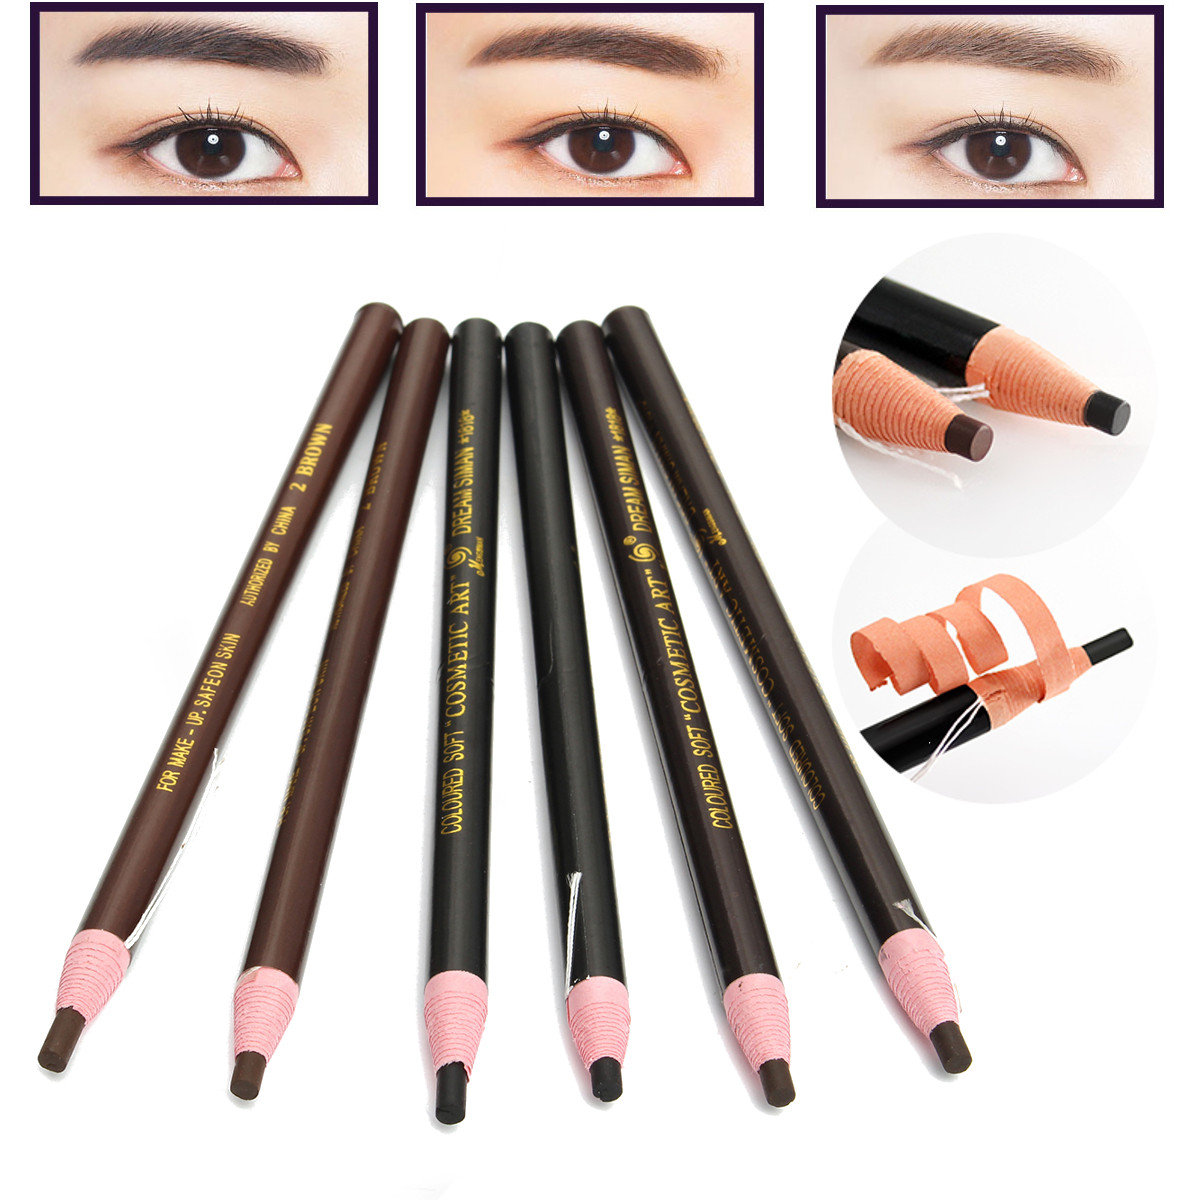 12PcsSet_Eyebrow_Pencil_Eyeliner_Cosmetic_Permanent_Makeup_Waterproof_Tattoo